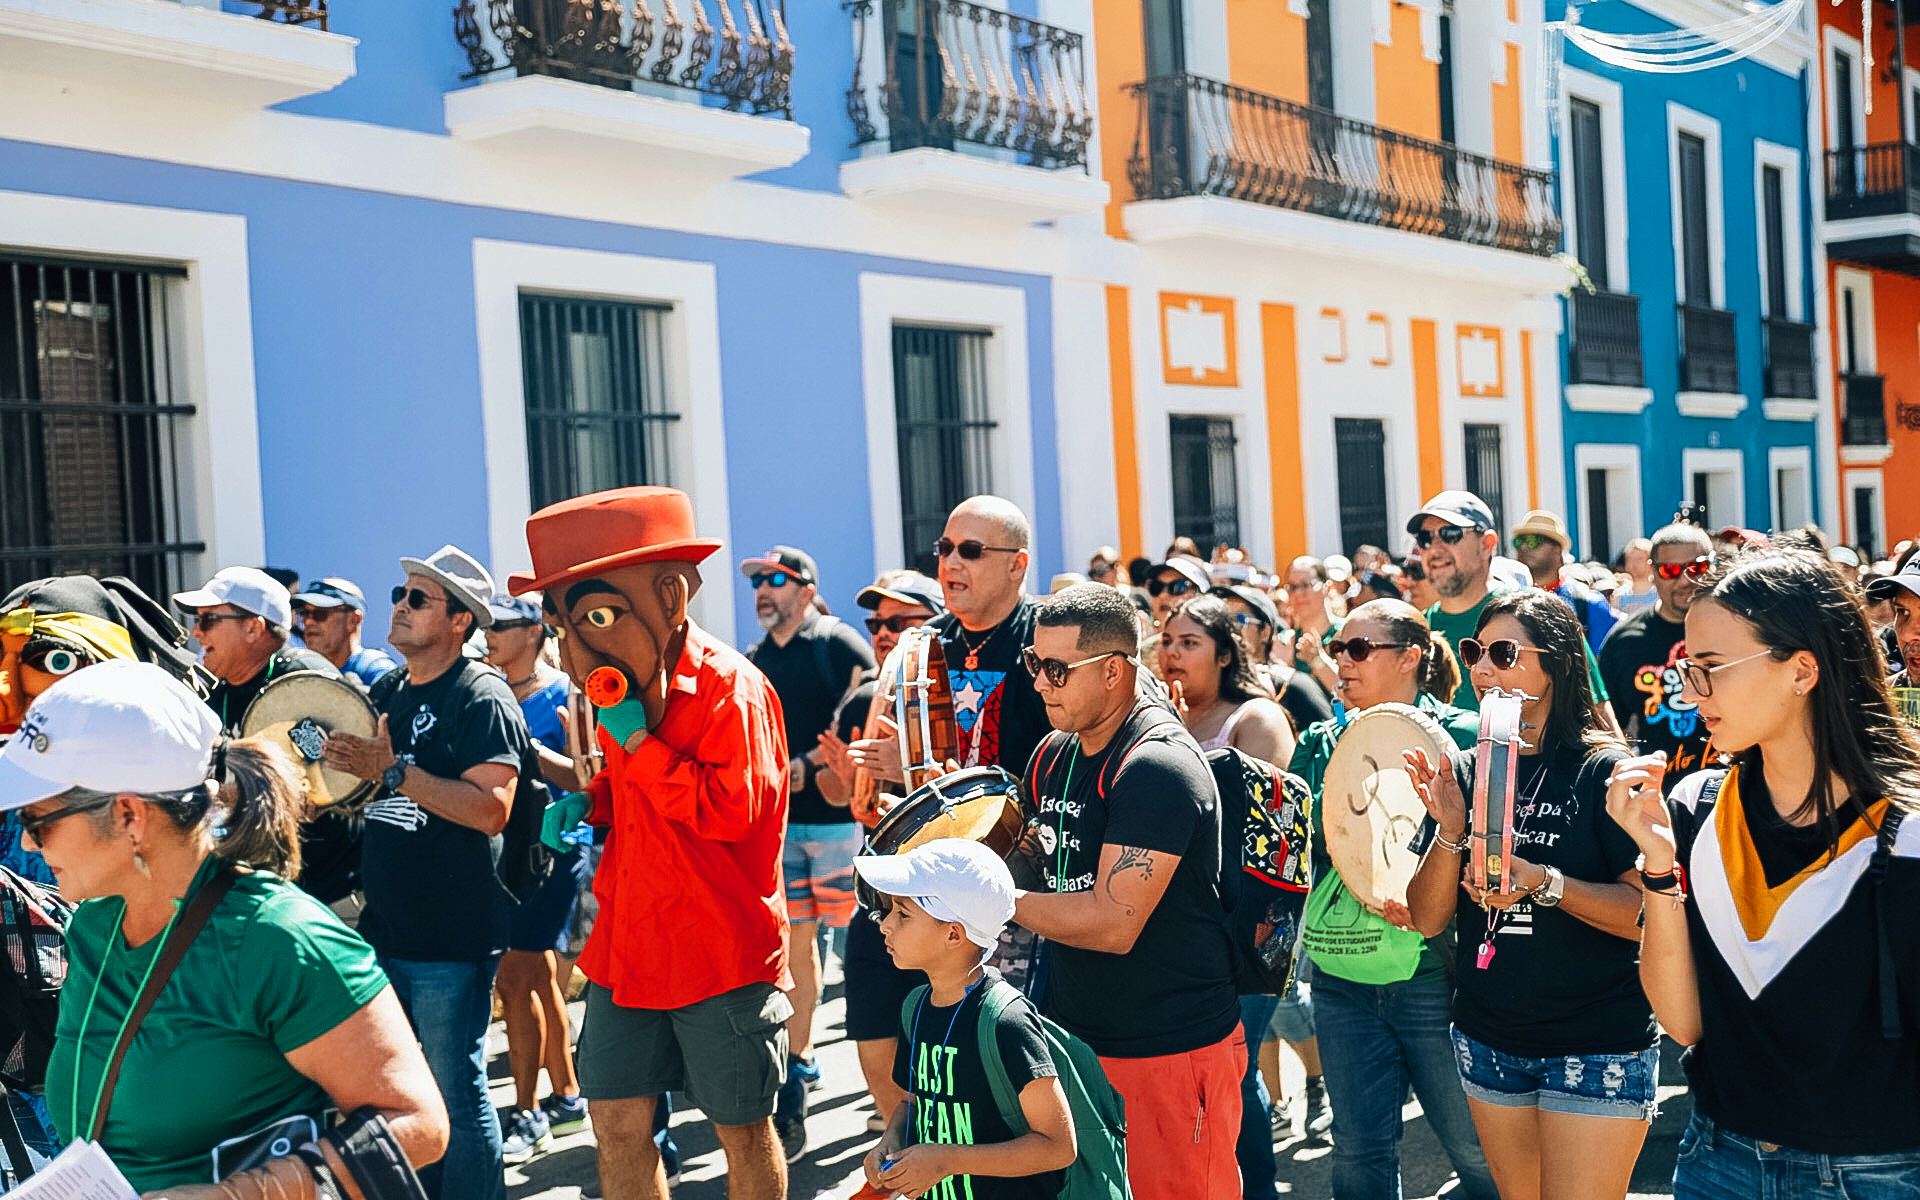 People celebrating the Fiestas de la Calle San Sebastián.